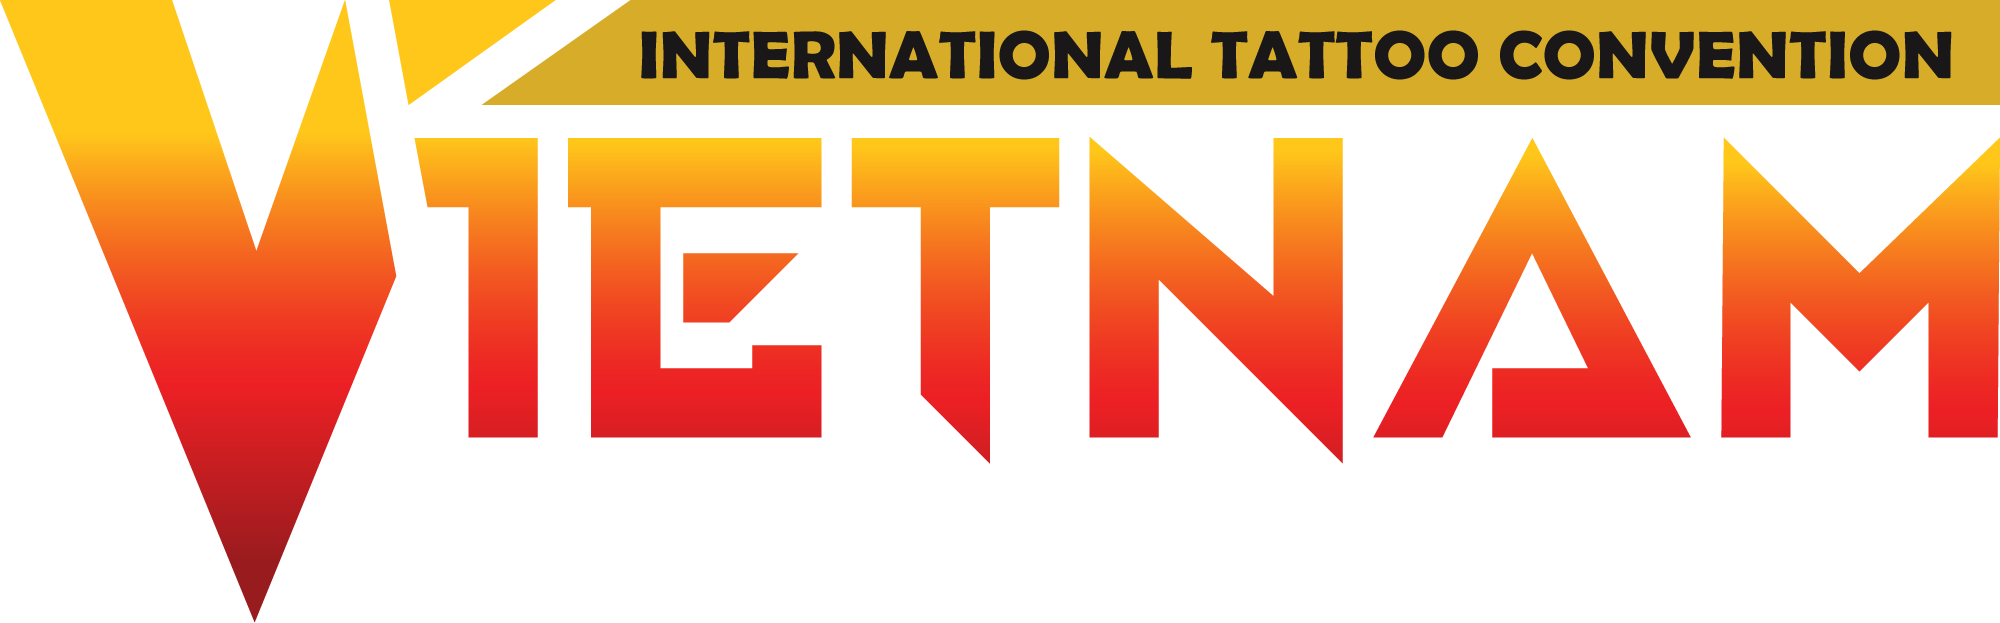 Vietnam International Tattoo Convention